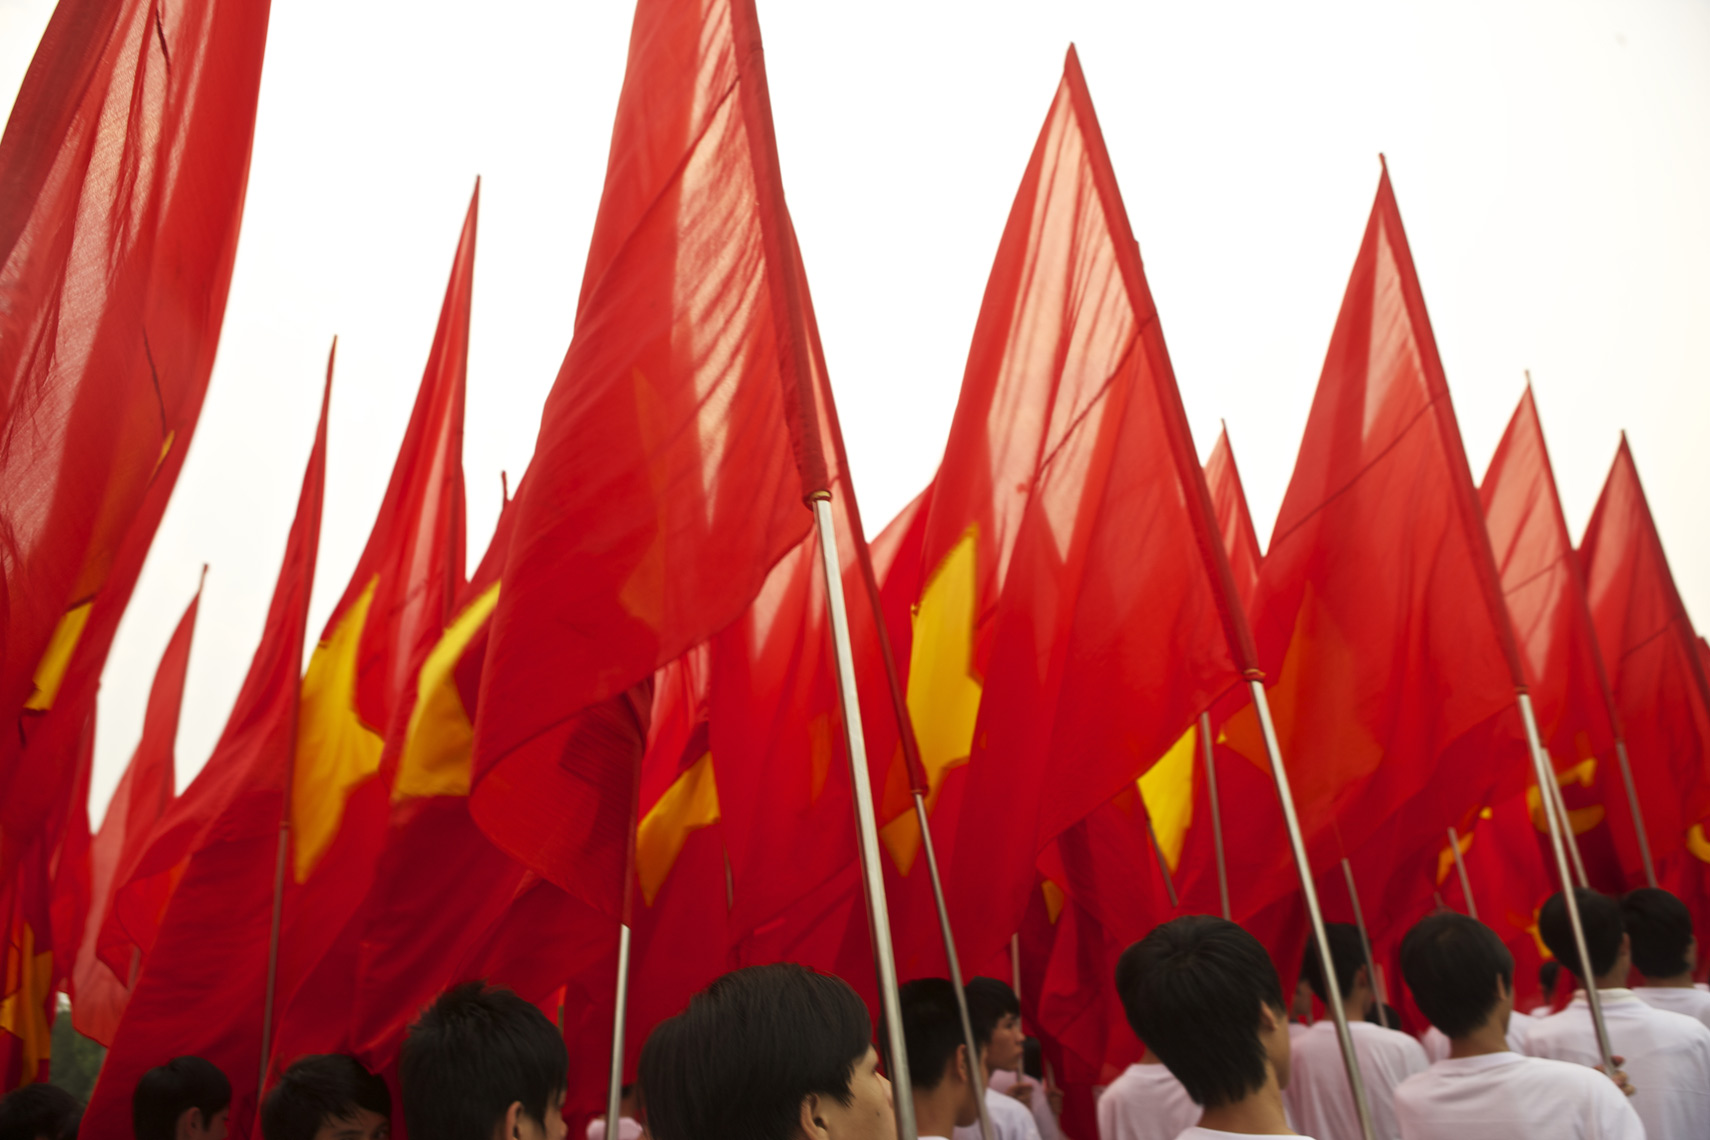 Vietnamese Flags Fly in Celebraton/Steve Mason Photography